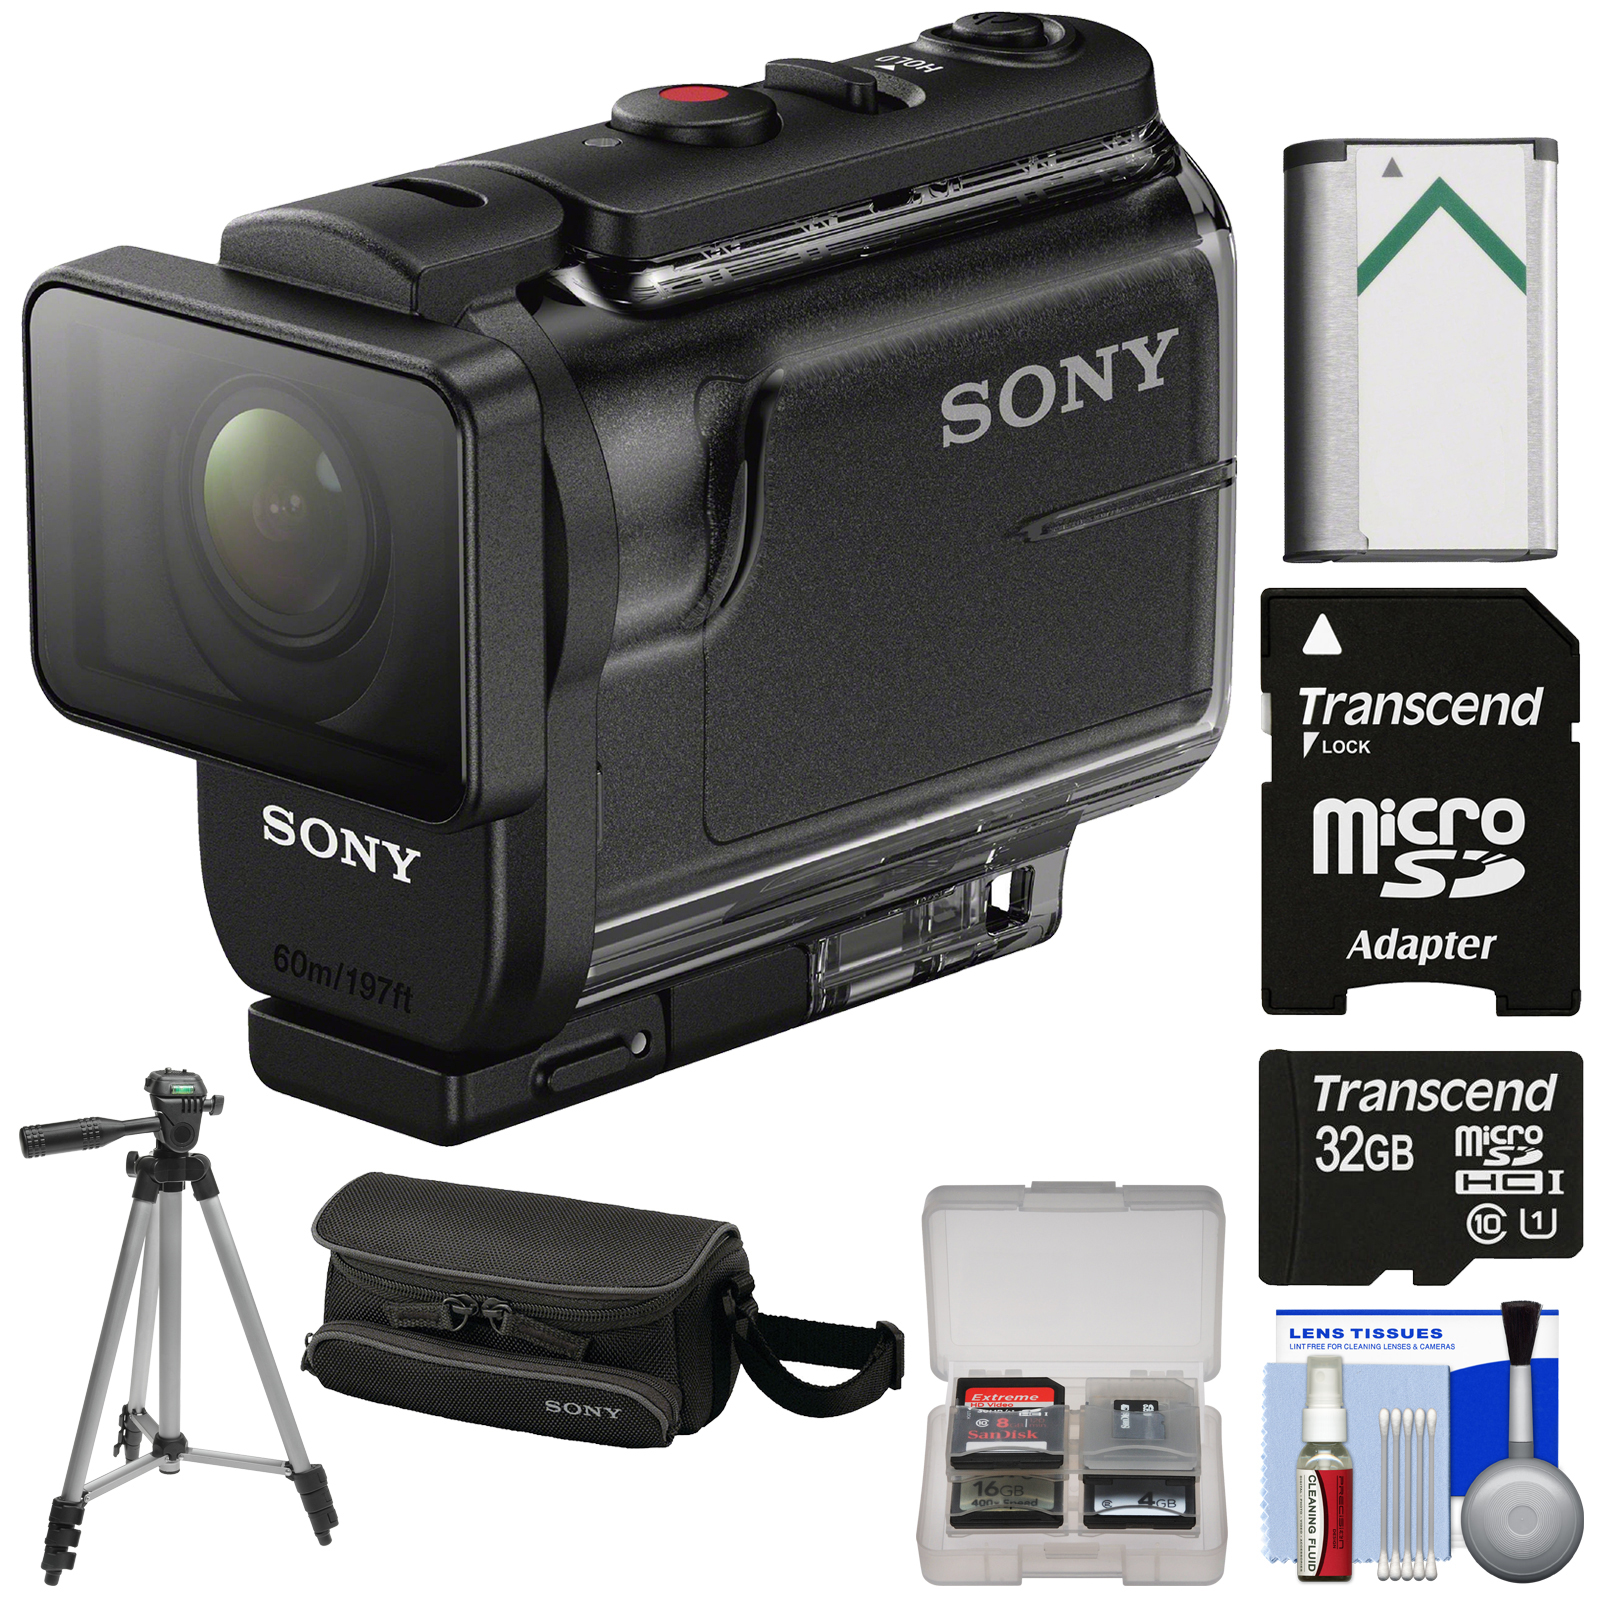 Sony Action Cam HDR-AS50 Wi-Fi HD Video Camera Camcorder with 32GB Card + Battery + Case + Tripod + Kit